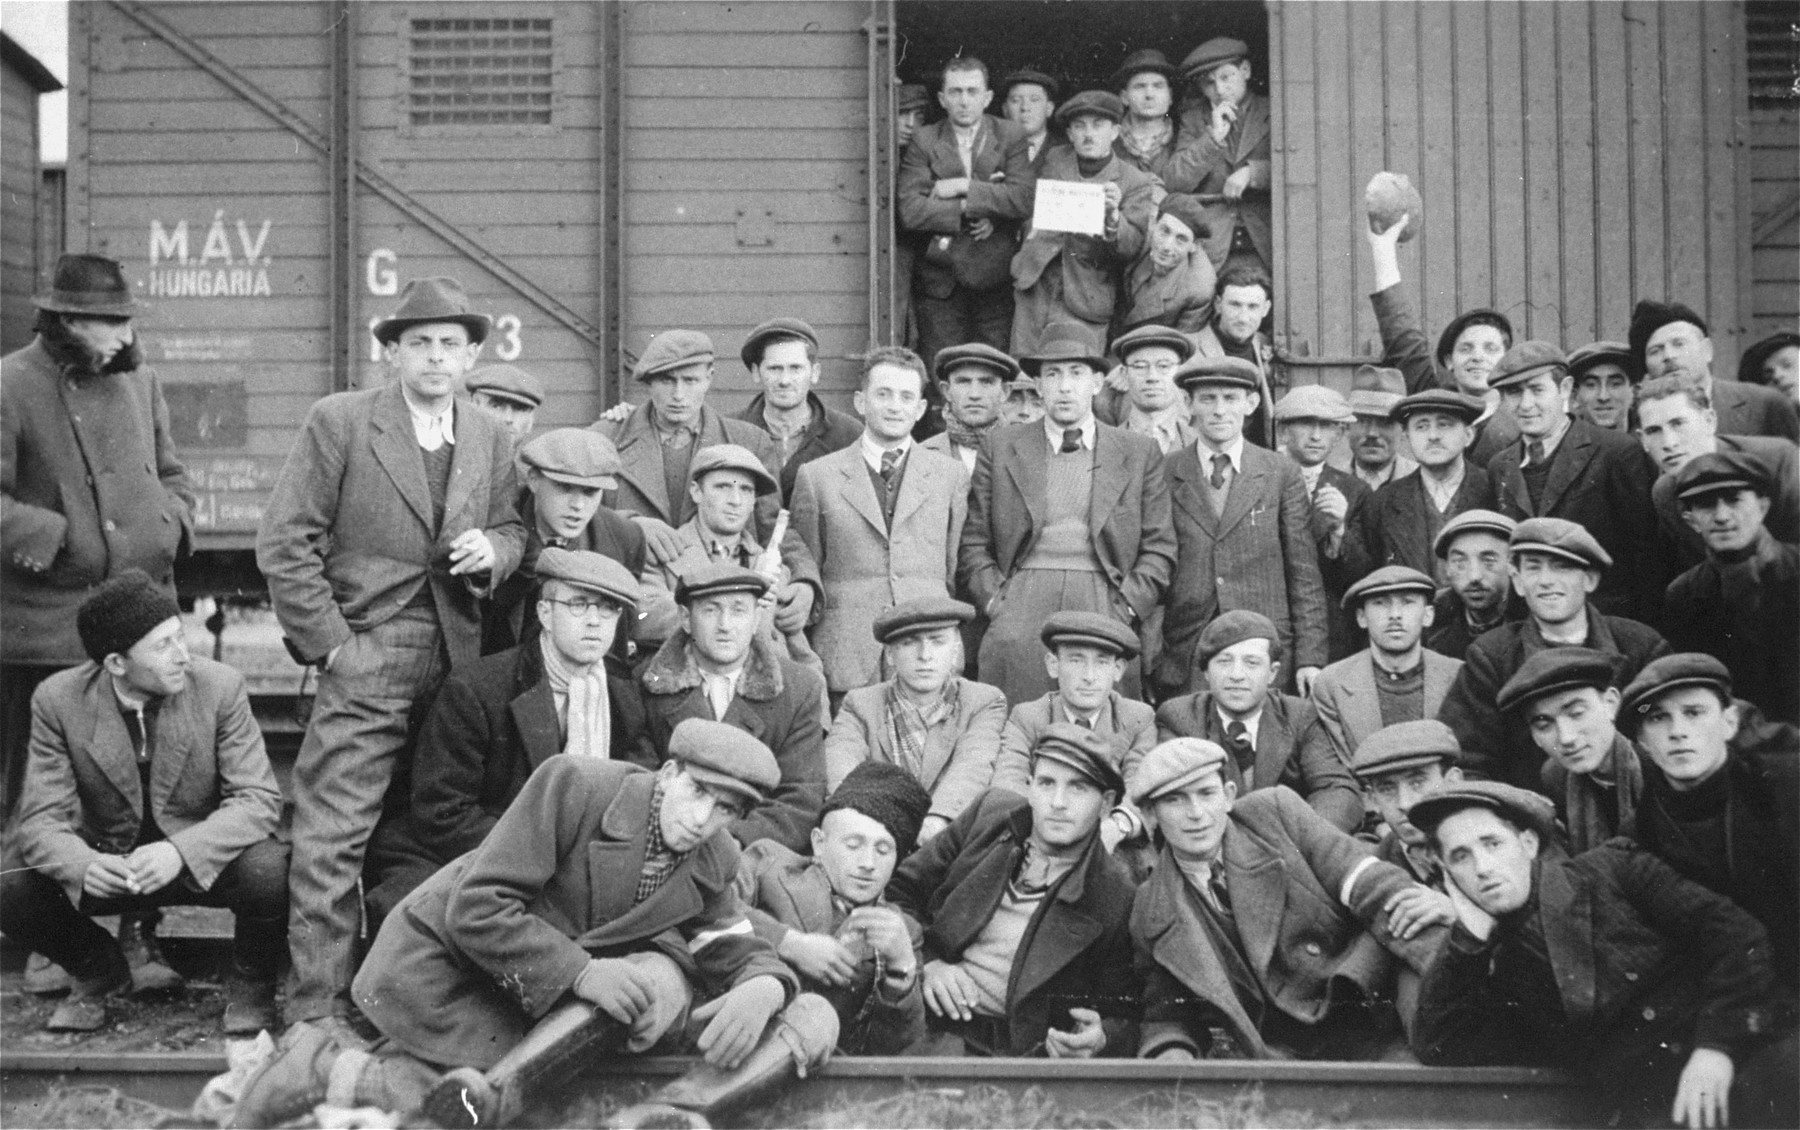 The donor's father, Kalman Yoszef (holding a bottle), among a group of  Hungarian Jews posing in front of a train before their transfer to a Hungarian labor camp.  One of the conscripts in the train holds a sign in Yiddish with a number underneath (illegible).